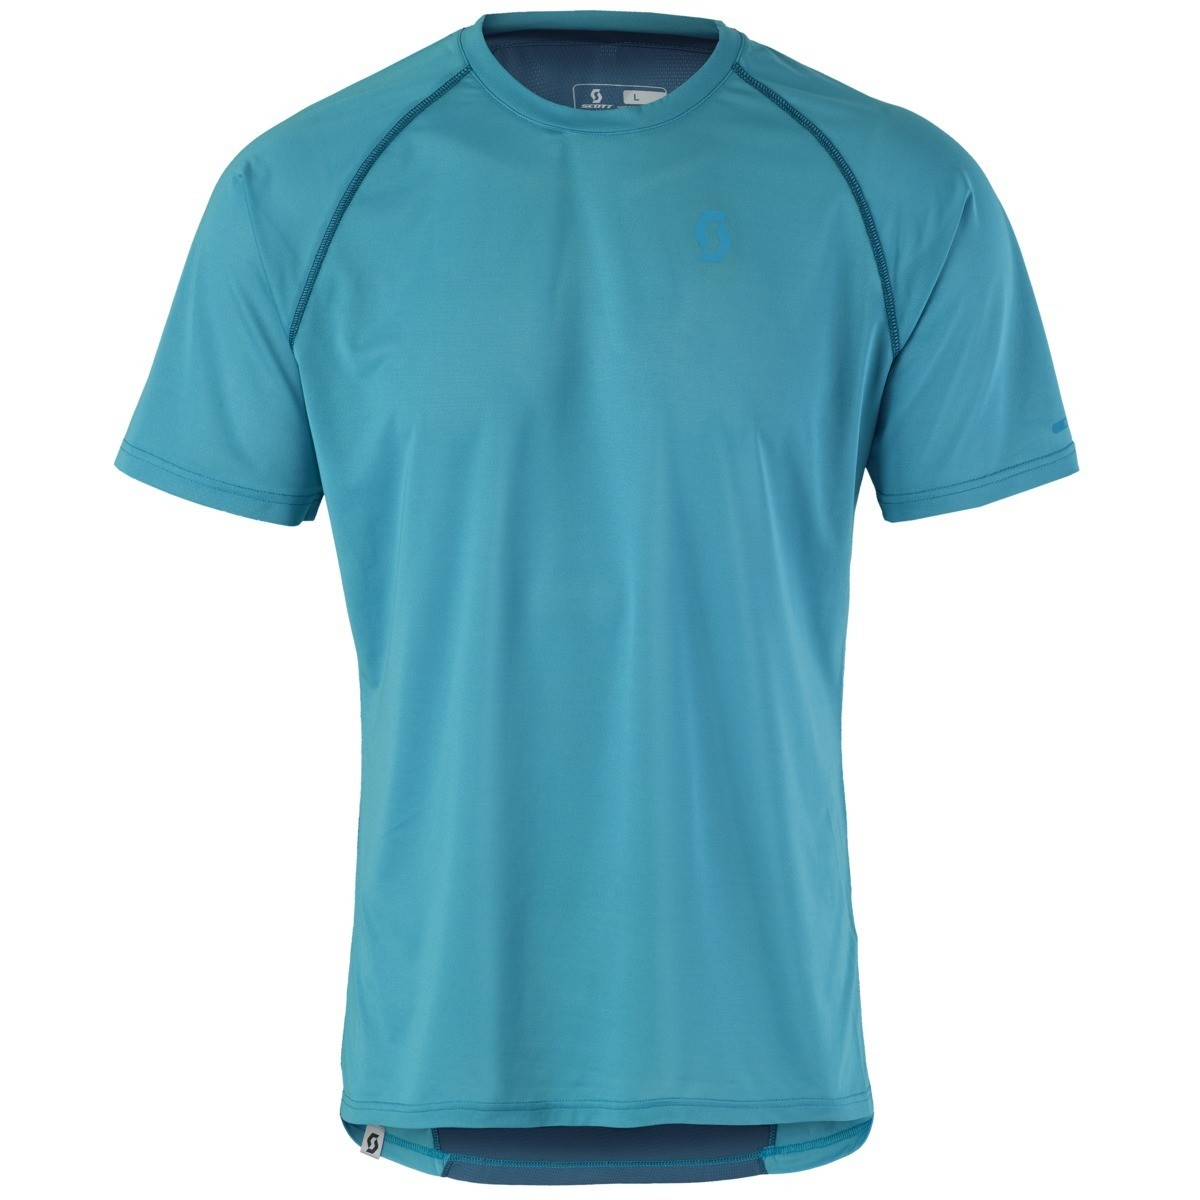 Scott t-shirt Aero s/s heren blue